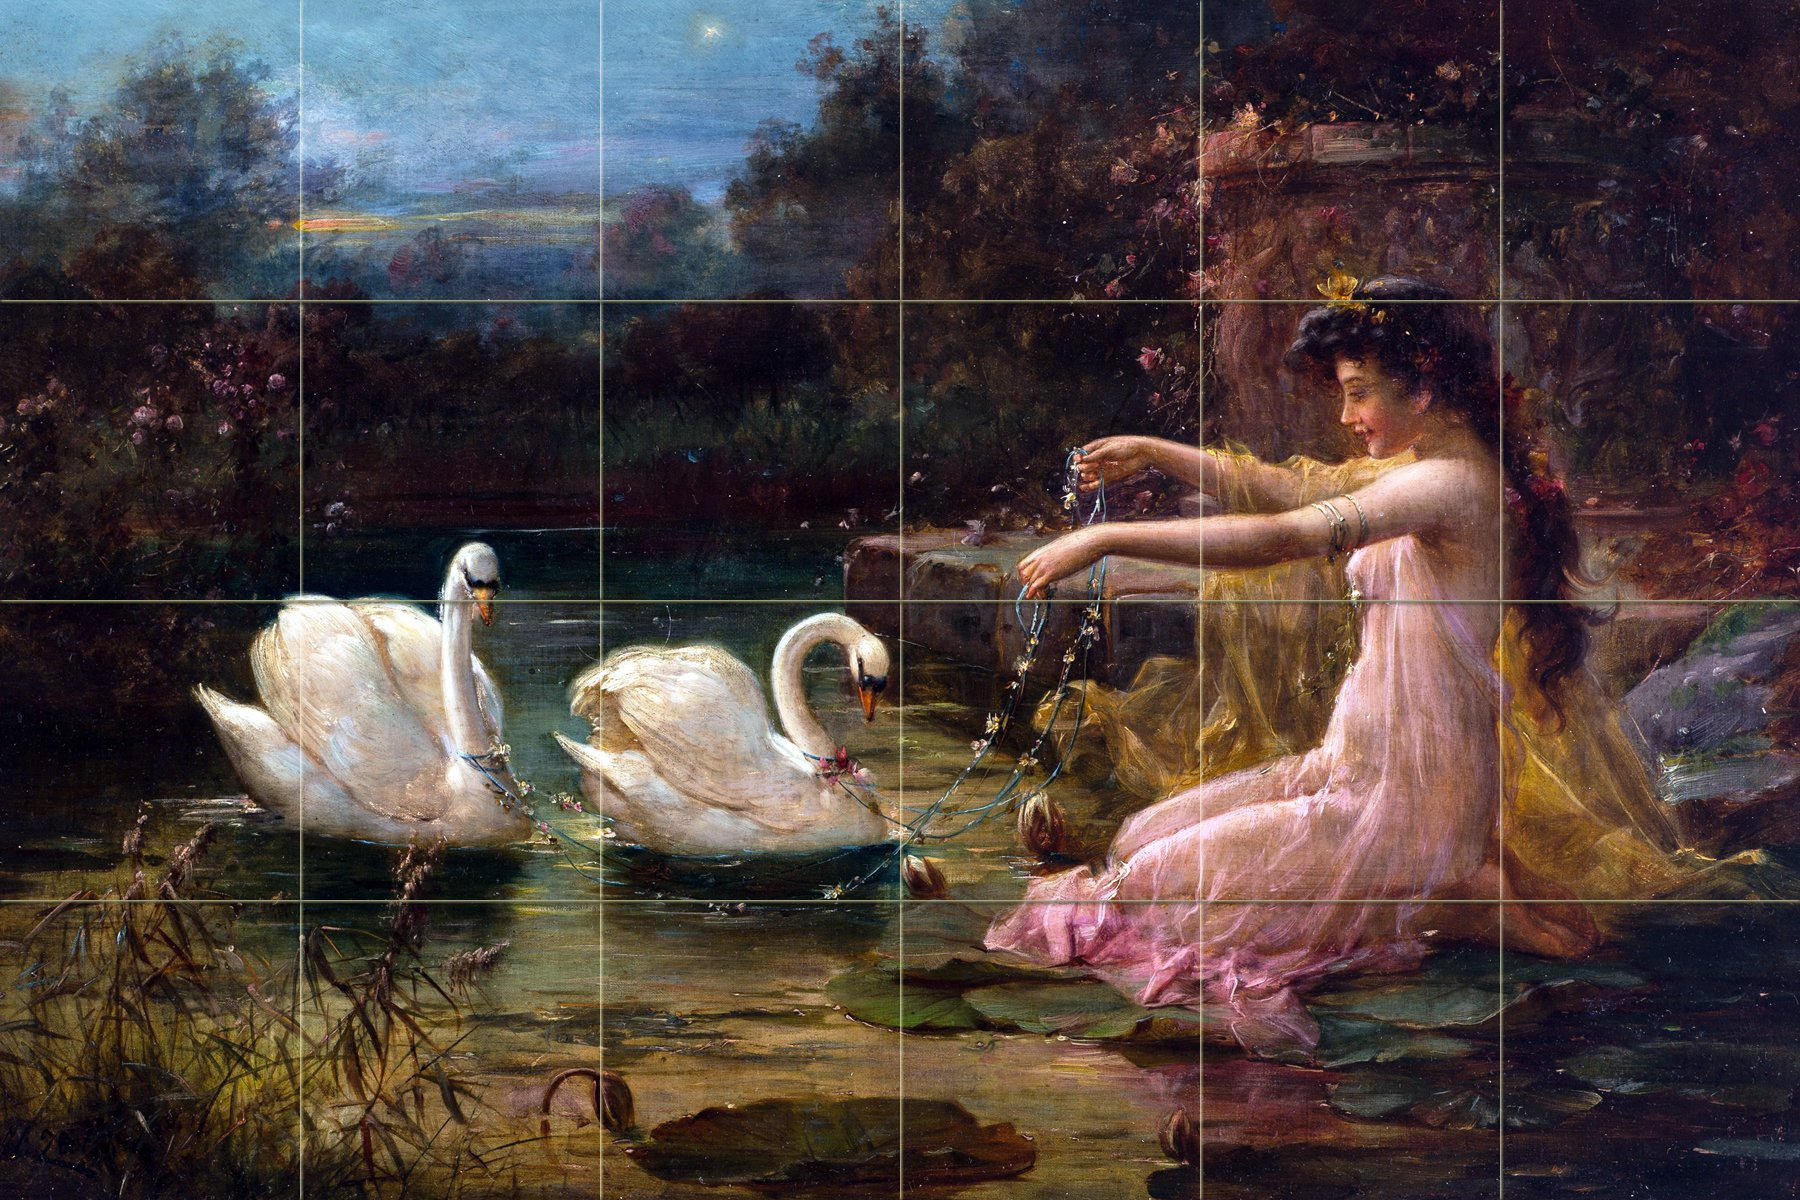 Landscape lady at the swan lake by Hans Zatzka Tile Mural Kitchen Bathroom Wall Backsplash Behind Stove Range Sink Splashback 6x4 6'' Marble, Matte by FlekmanArt